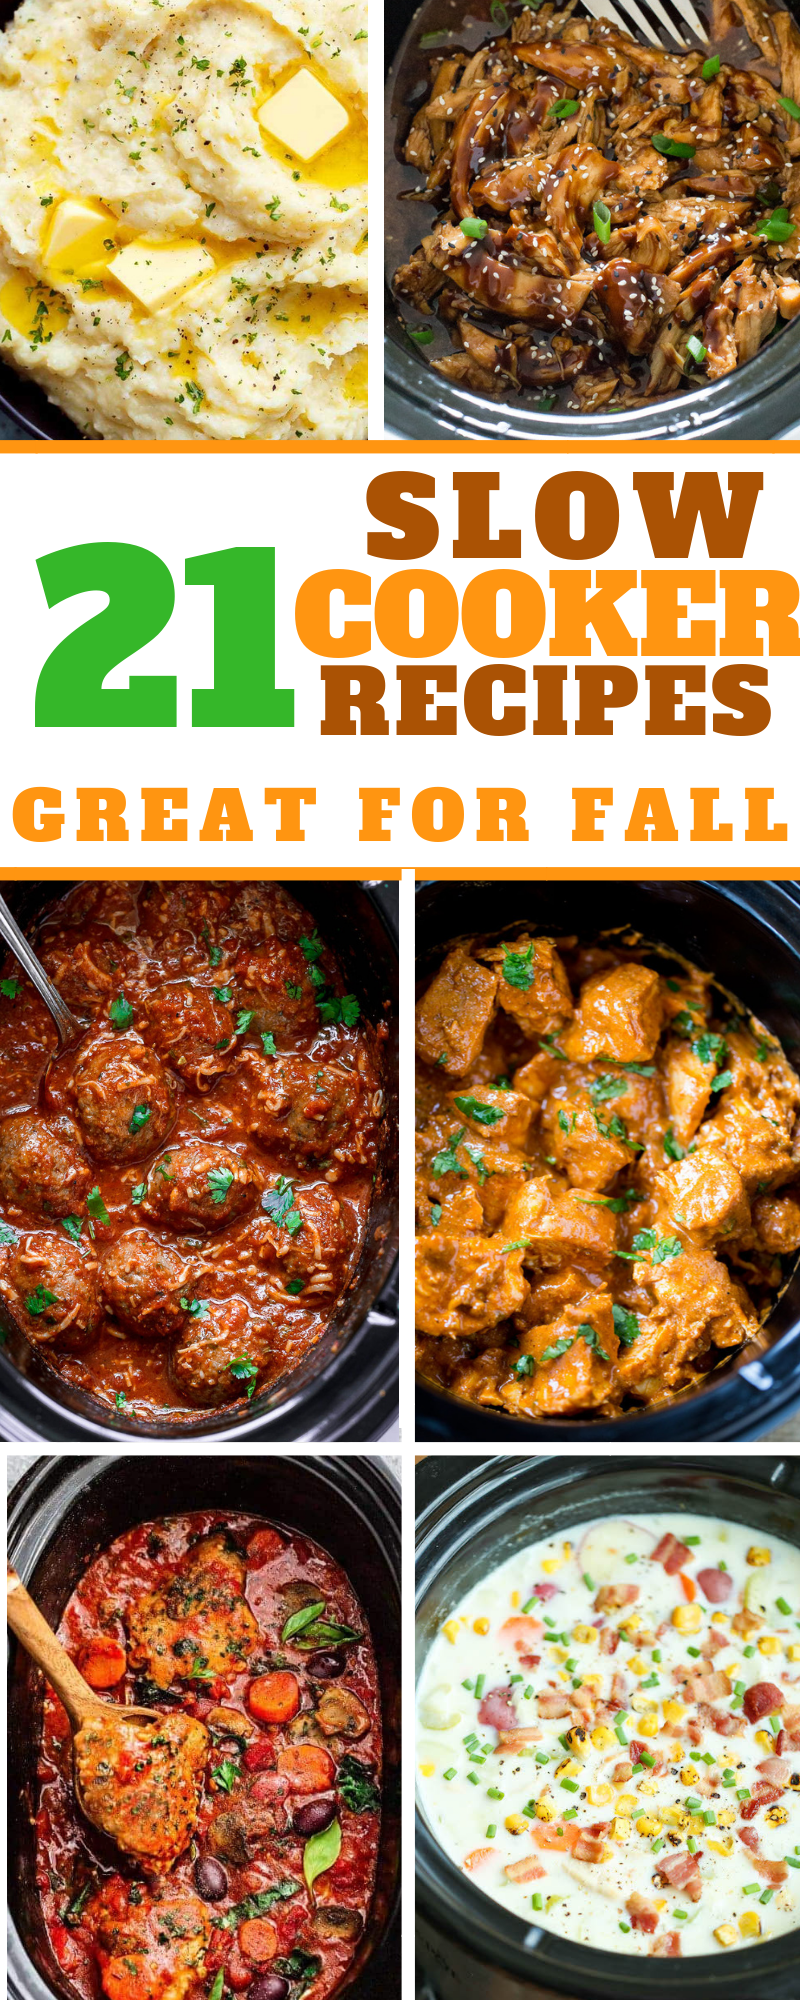 Enjoy Great Hearty Slow Cooker Dinners With Healthy Easy En Beef And Pork These Are Crock Pot Meals Dinner Ideas Recipes